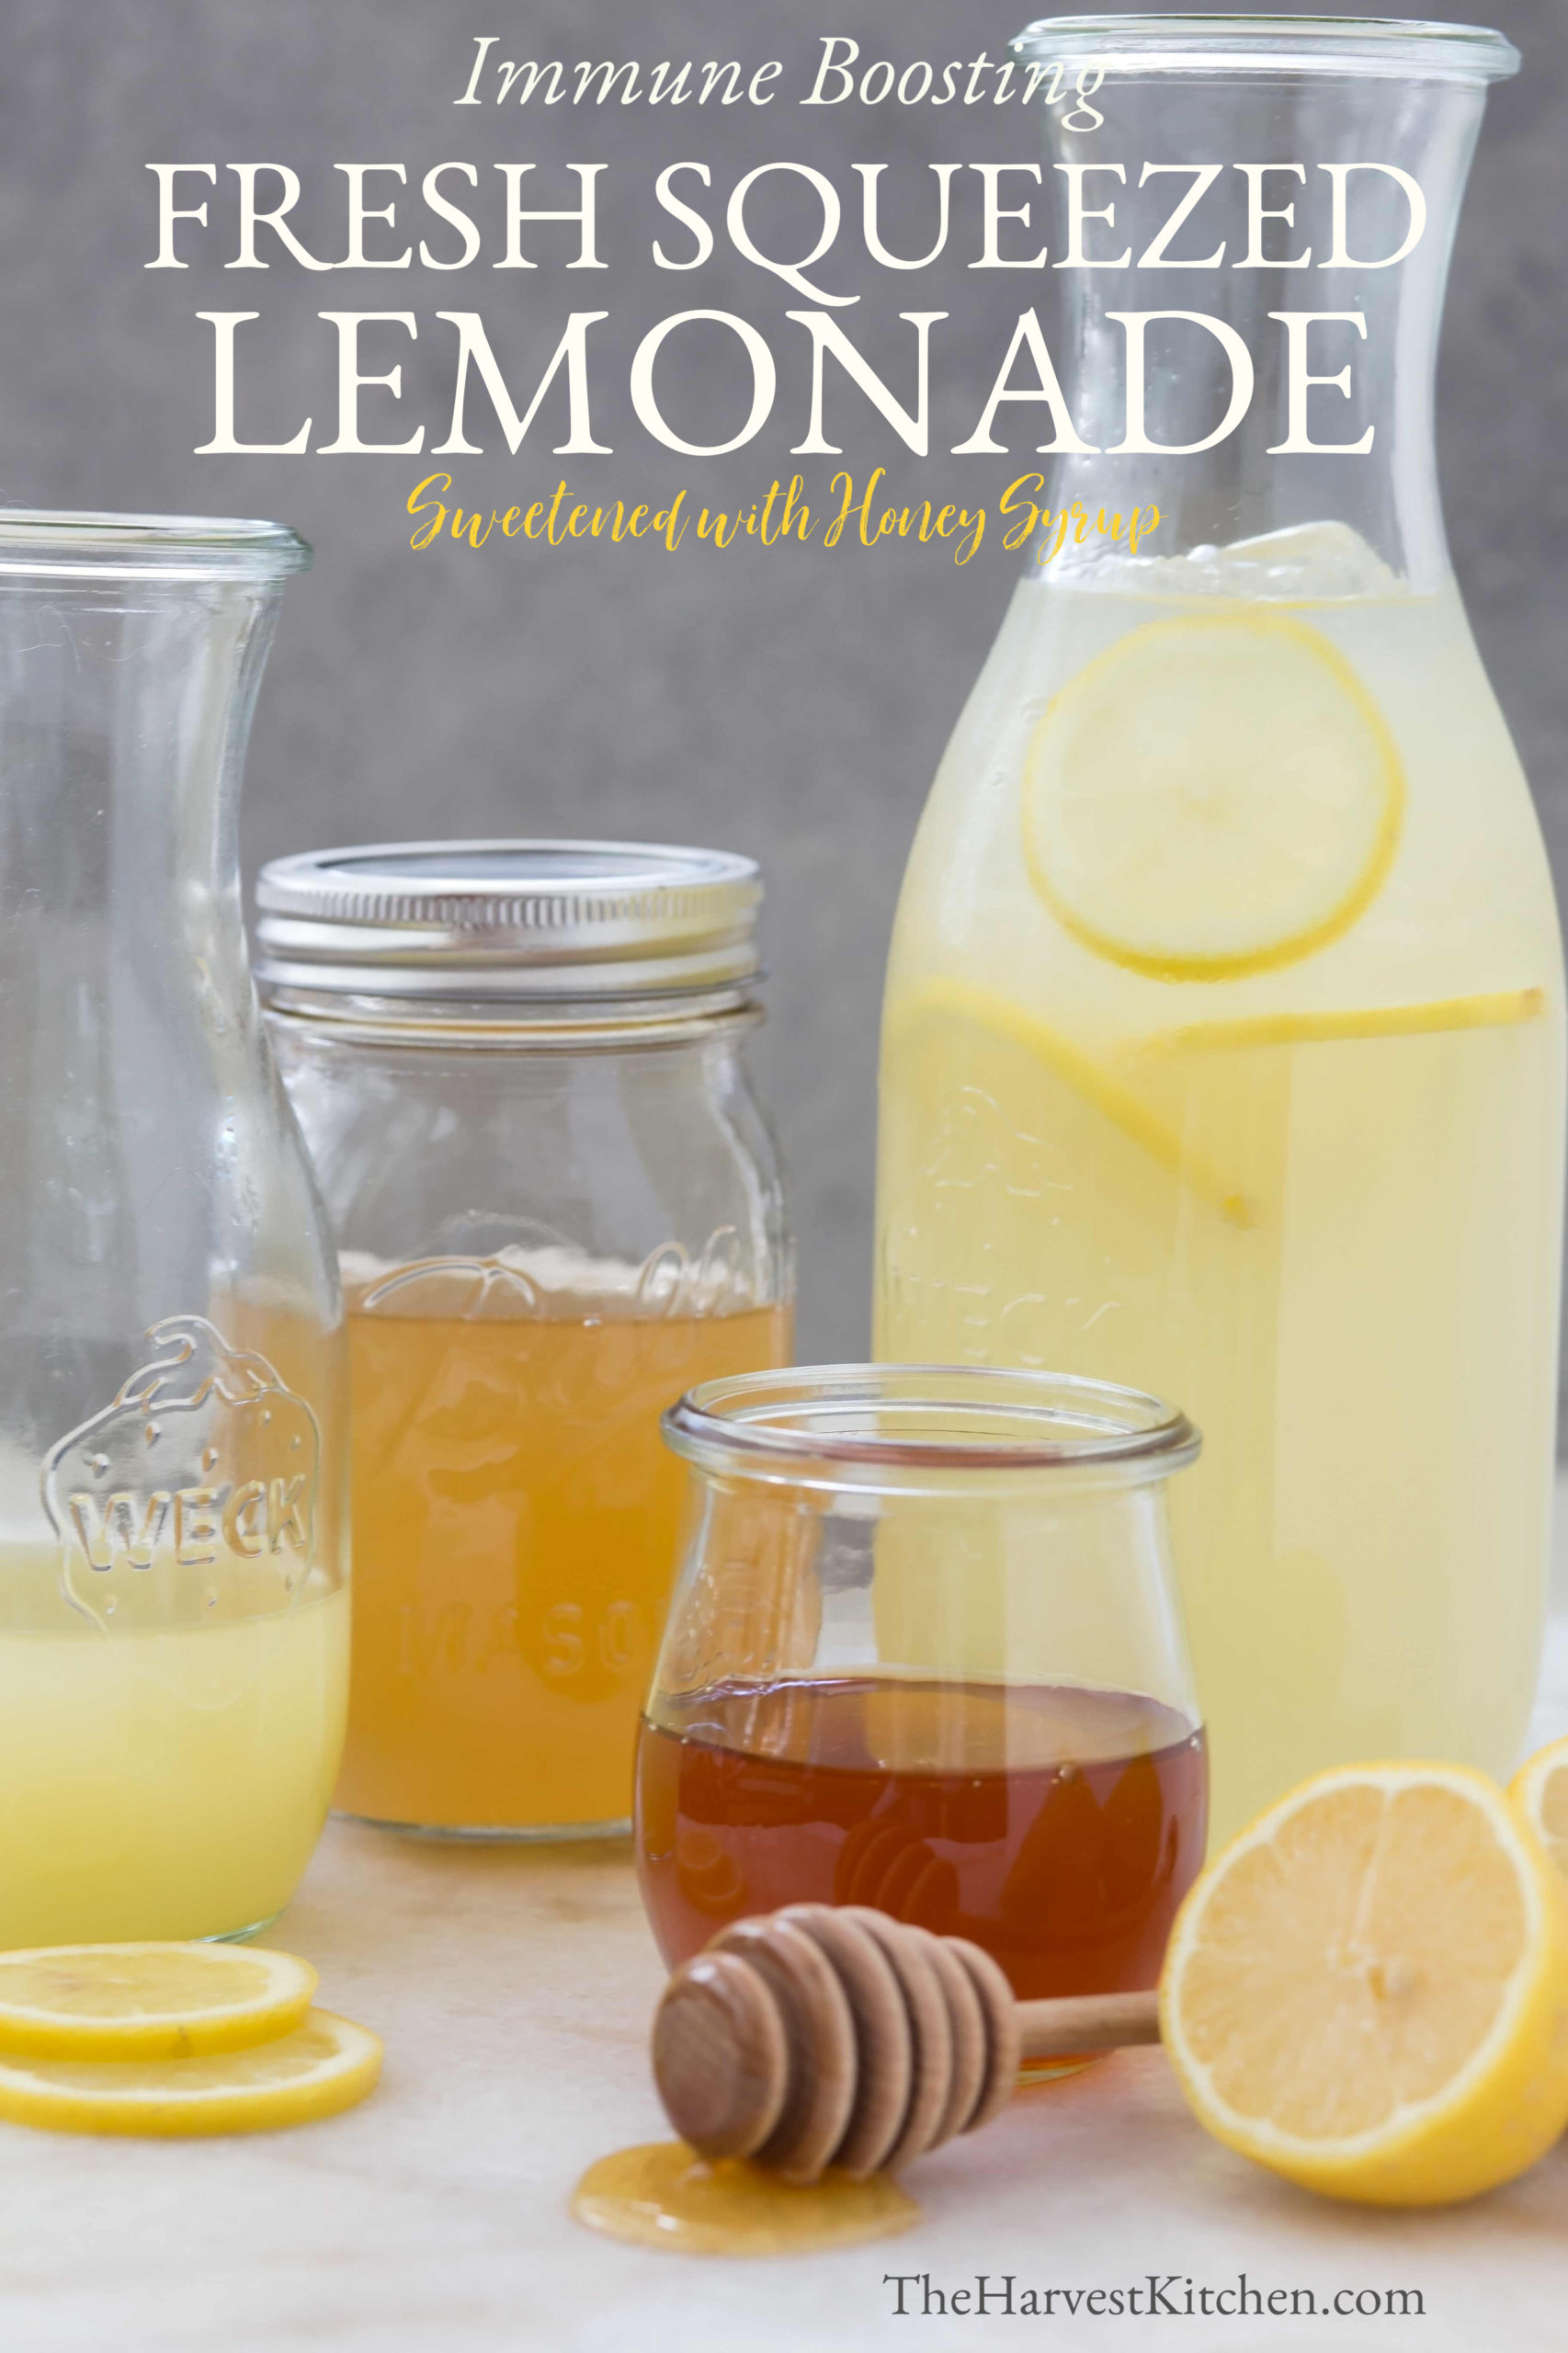 This Fresh Squeezed Lemonade screams of summer, and it's rich with antioxidant and anti-inflammatory benefits that will give a boost to your immune system